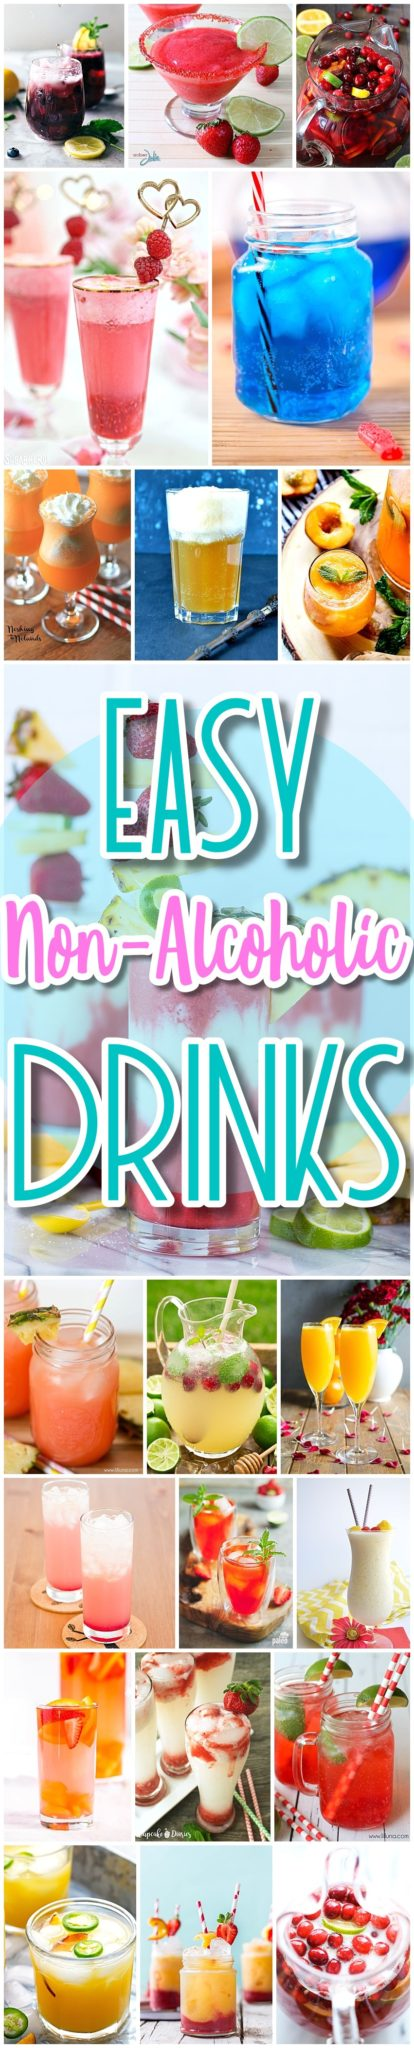 The BEST Easy Non-Alcoholic Drinks Recipes - Creative Mocktails and Family Friendly, Alcohol-Free, Big Batch Party Beverages for a Crowd! - Dreaming in DIY #mocktails #virgindrinks #alcoholfreedrinks #nonalcoholicdrinks #familyfriendlydrinks #partypunch #partydrinks #newyearseve #partydrinkrecipes